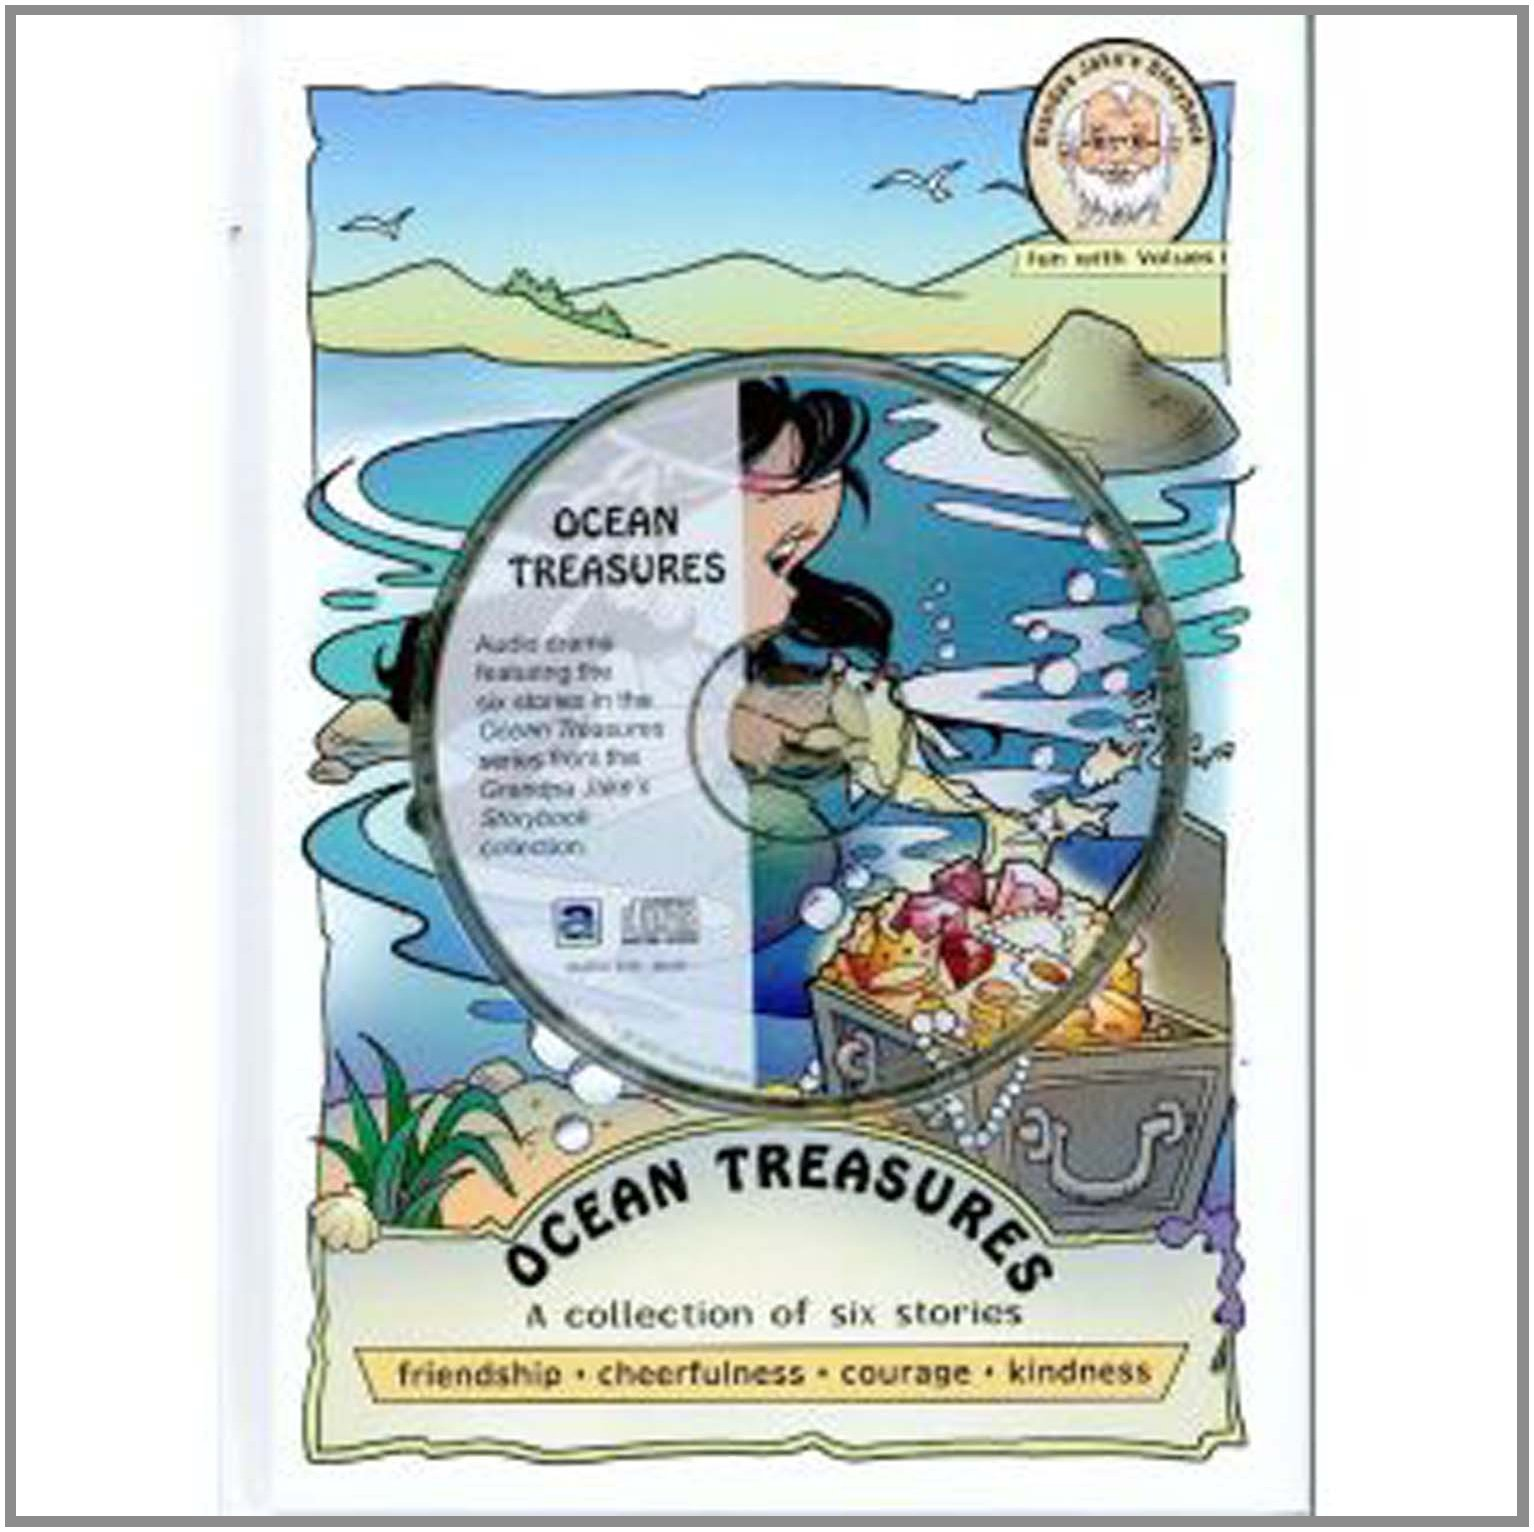 Download Ocean Treasures-Grandpa Jake's Hard Cover Kids Book-Plus Audio Book-Fun-Values-Friendship-Courtesy-Courage-Prayer-Short Stories for ... Kids-Helping Other (Grandpa Jake's Storybook) PDF